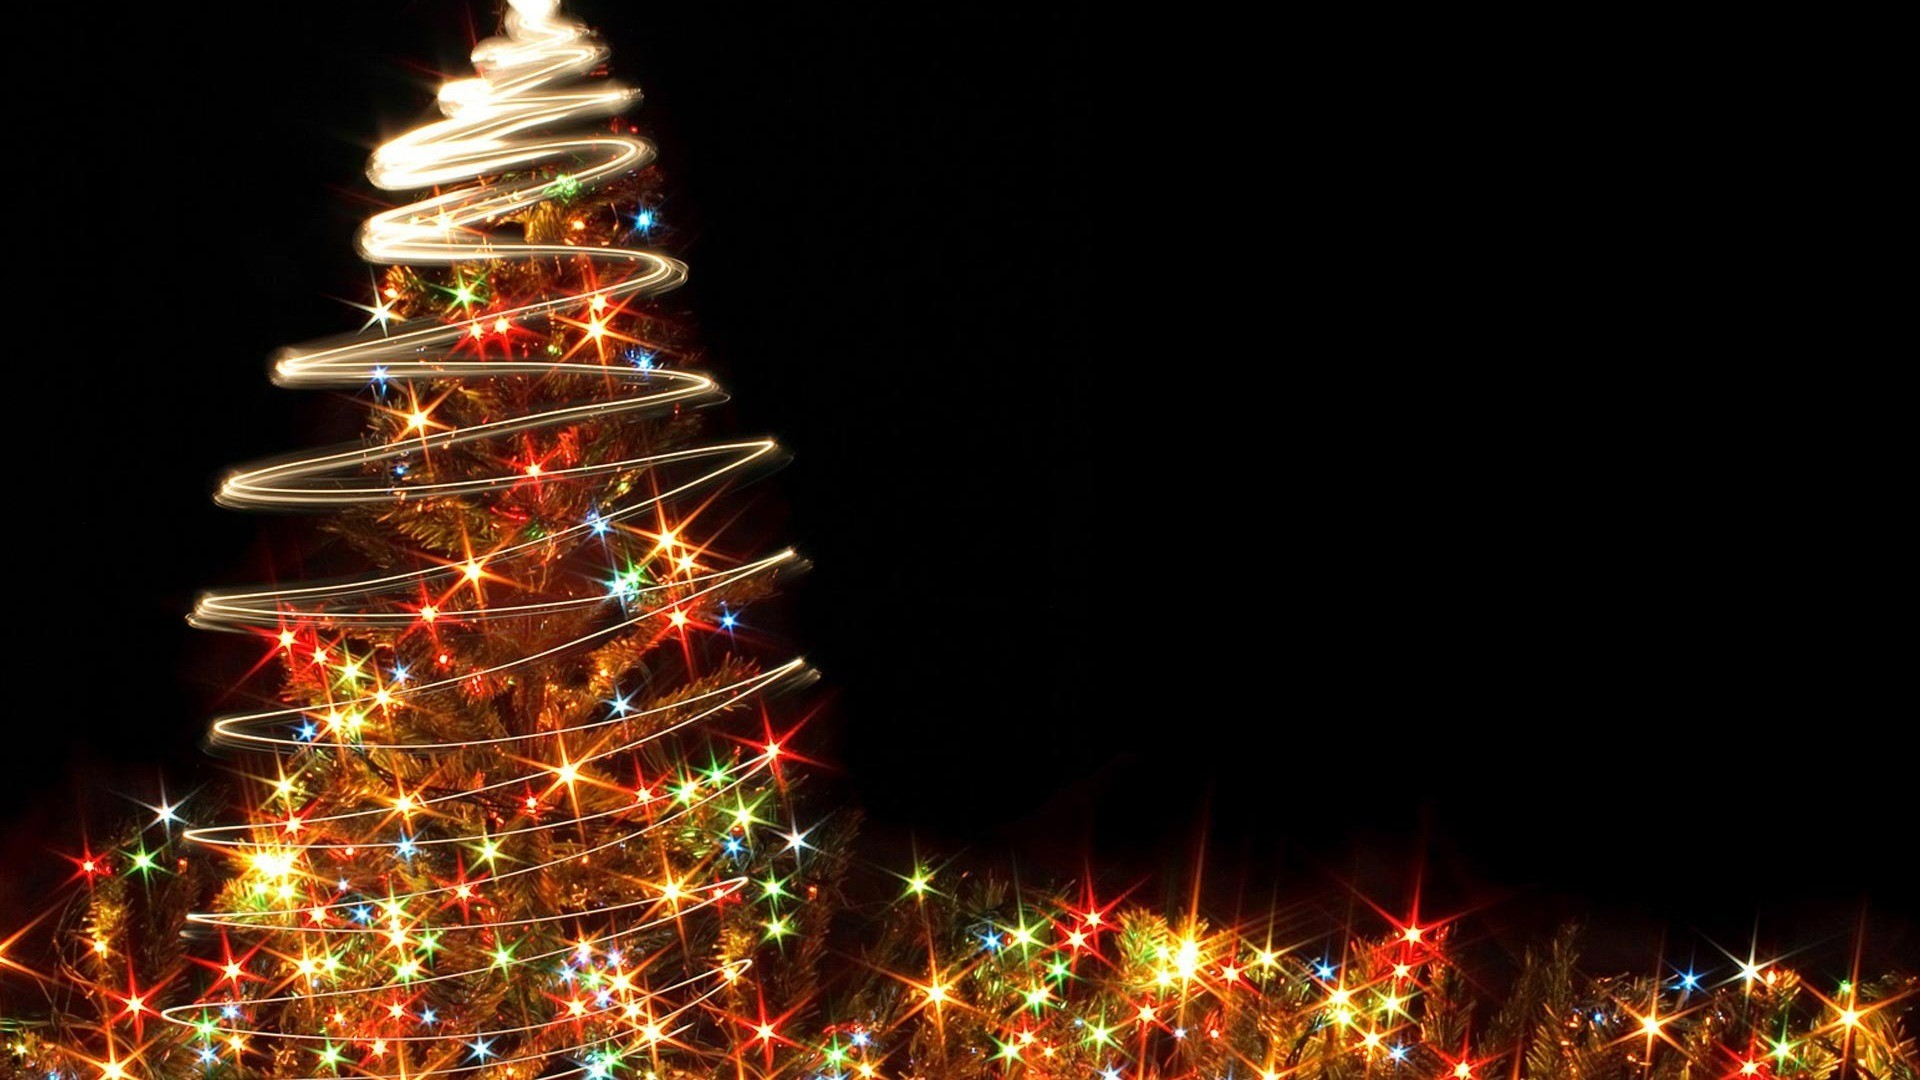 Christmas Tree Wallpaper Backgrounds ·①